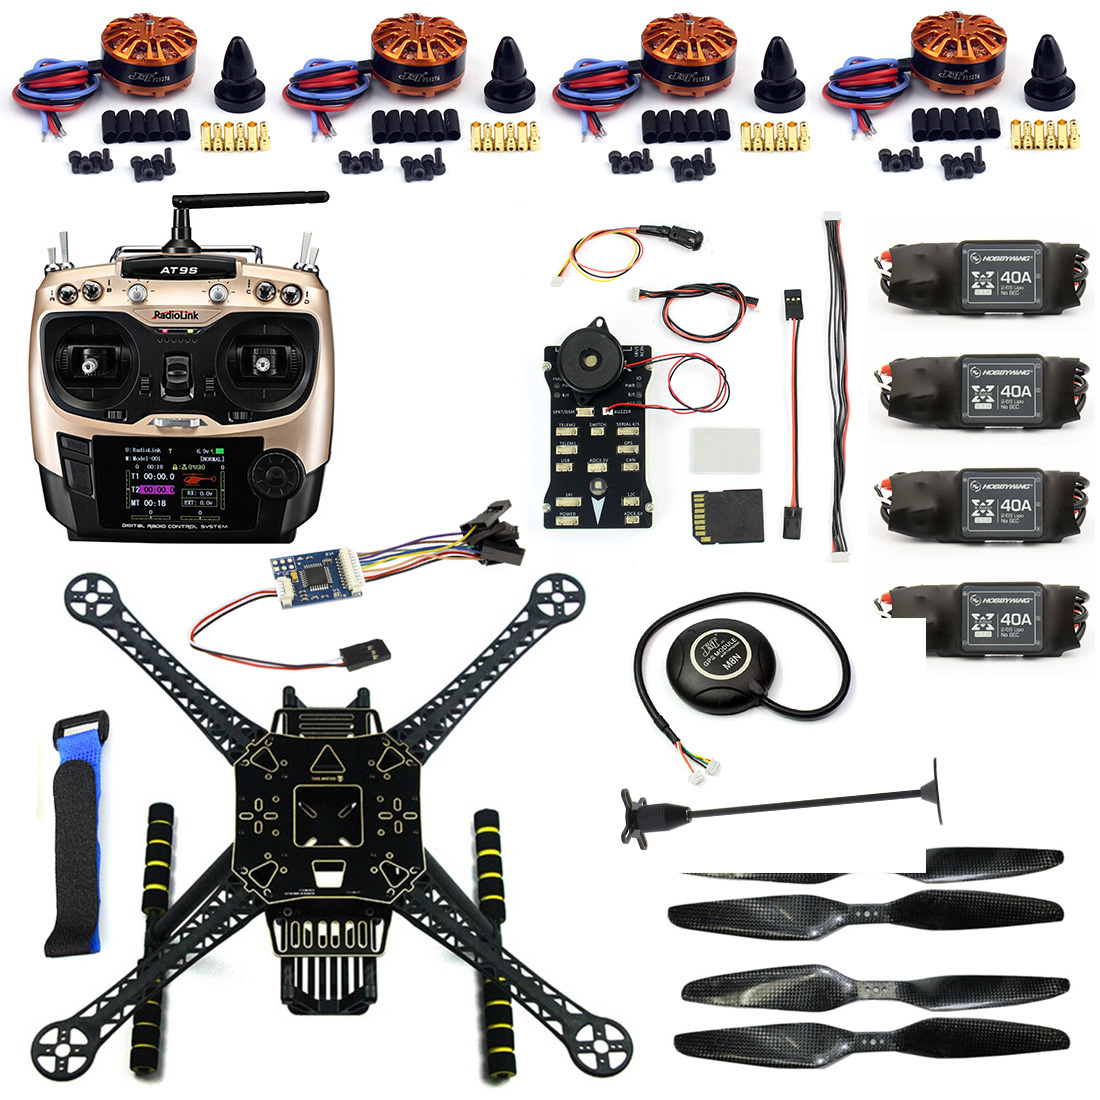 F19457-B DIY FPV Drone Kit S600 Quadcopter Frame 40A ESC with 700KV Motor Pix Flight Control AT9S Transimitter GPS XT60 Plug